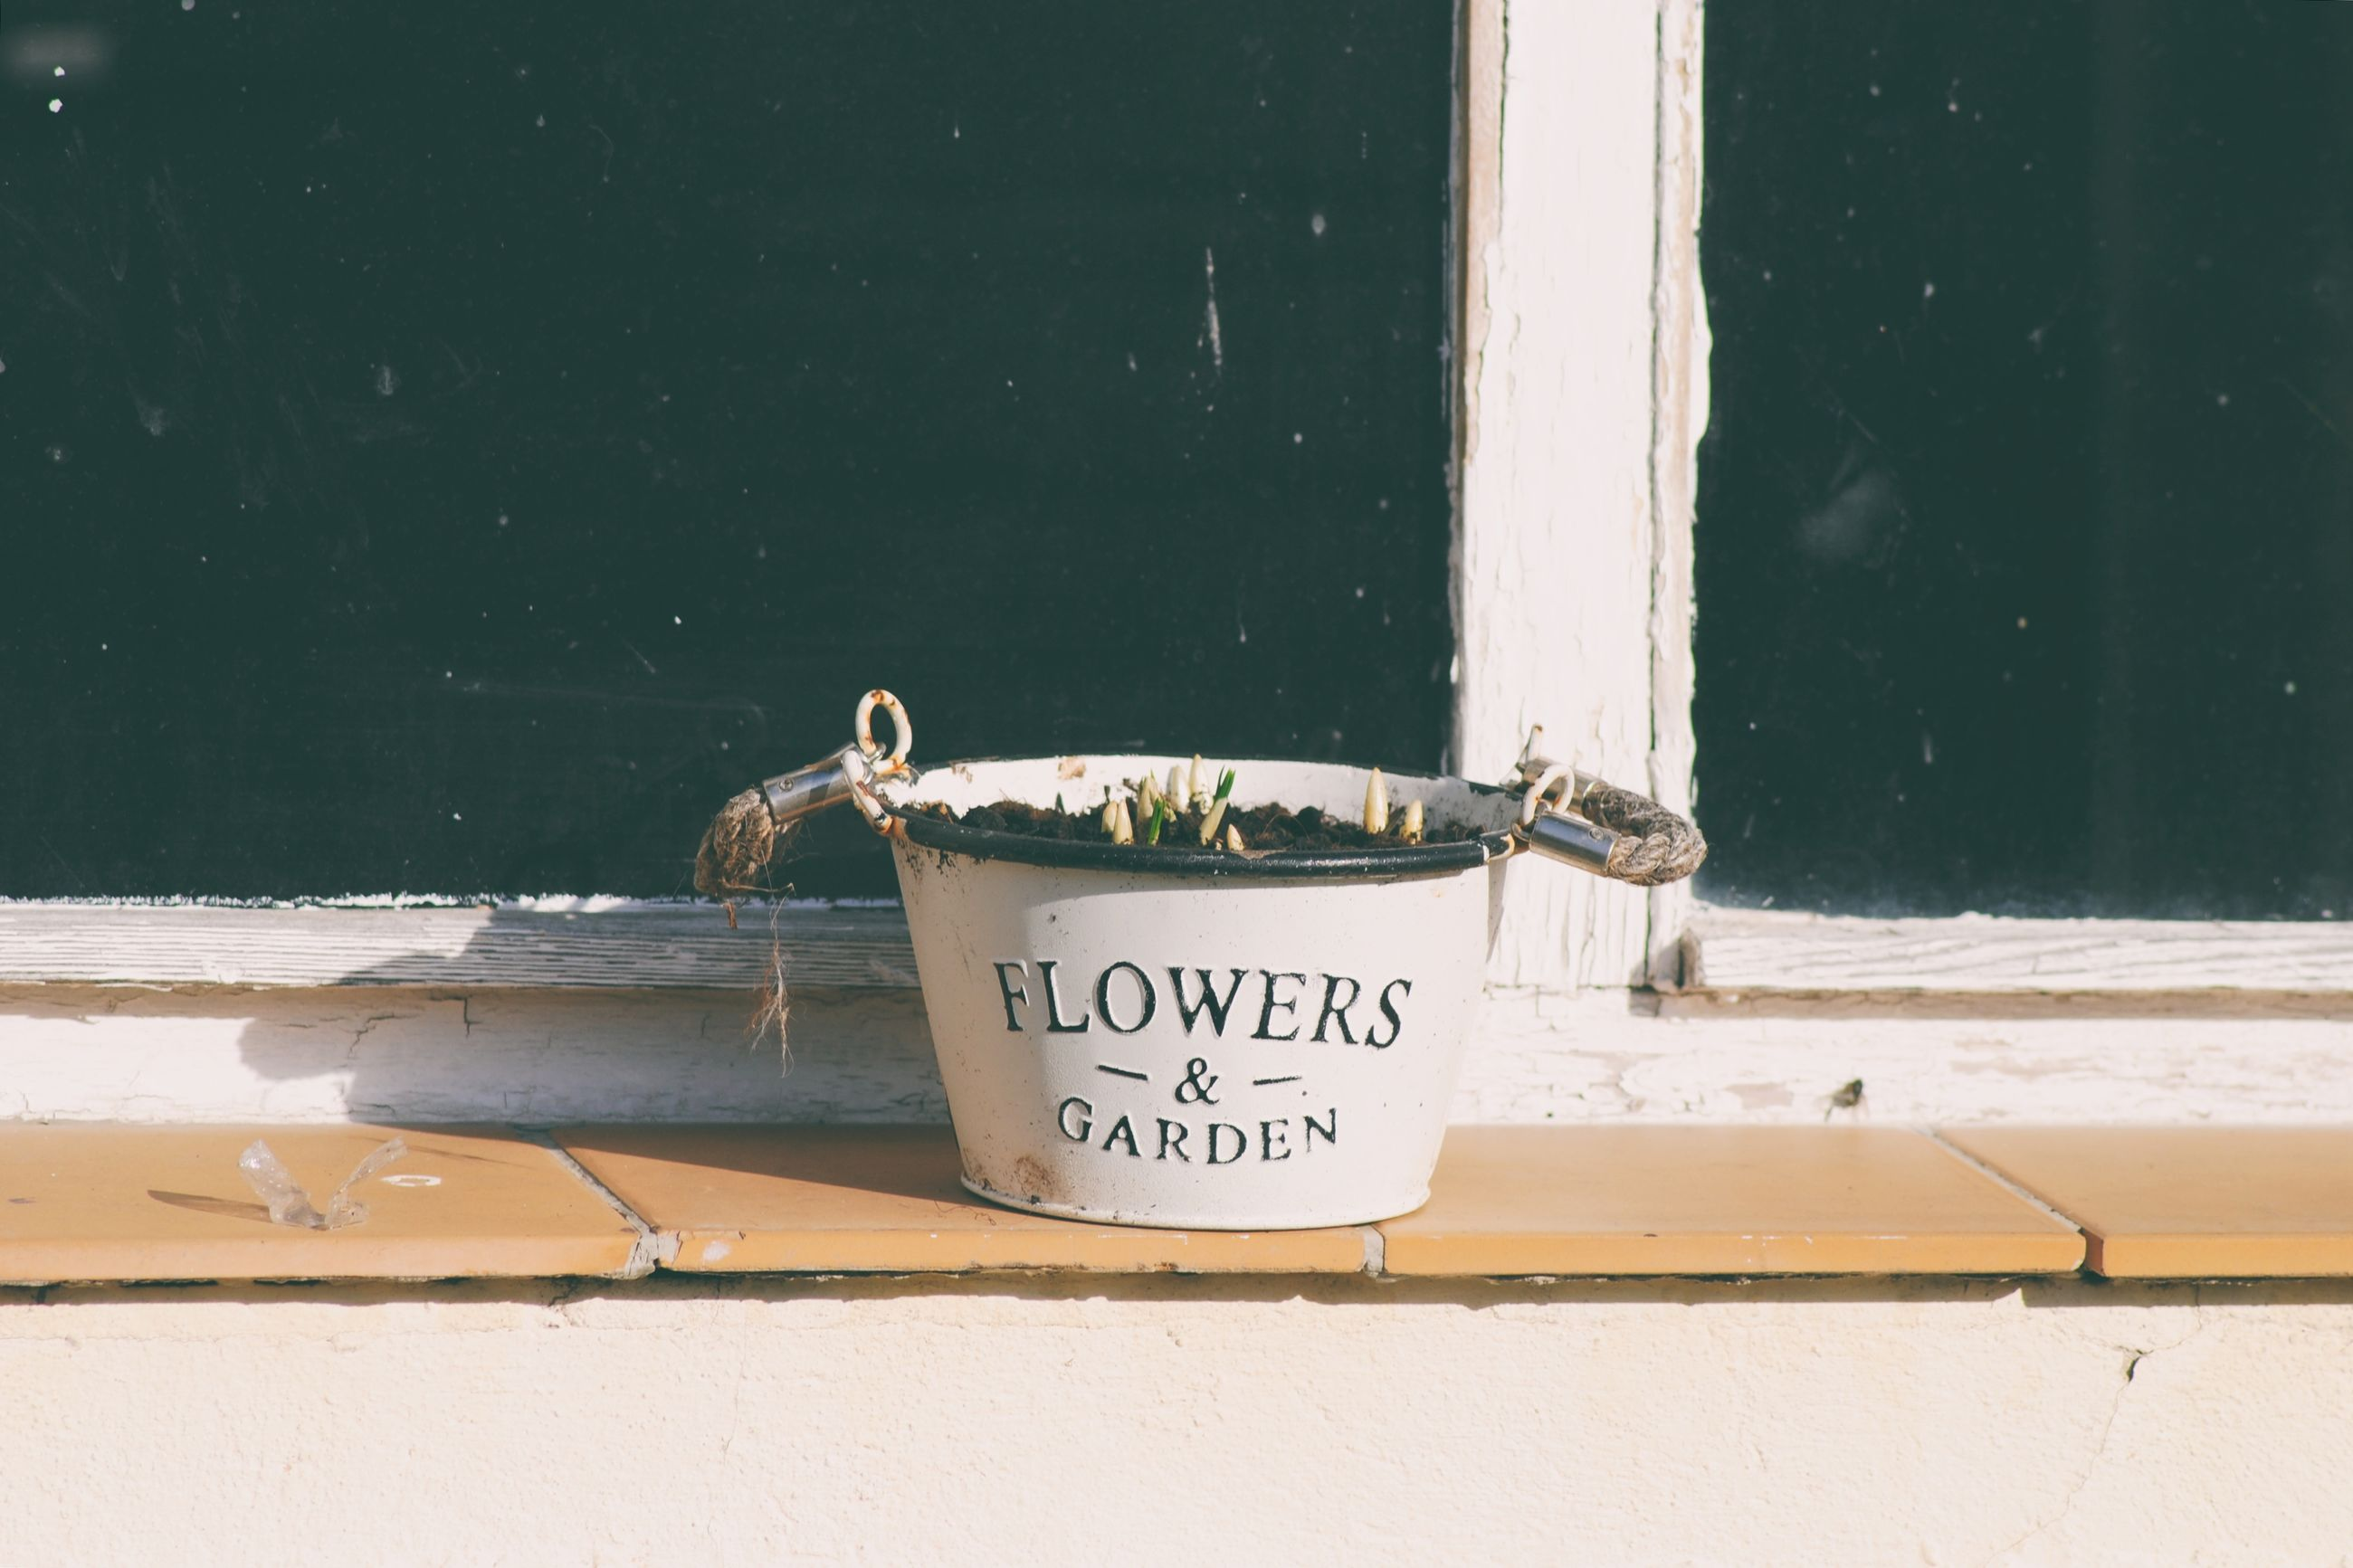 Flower Pot Plant Top Plant Growing Growth Window Nature New Life Seedling Young Plant Spring Spring Has Arrived Springtime Nature_collection Gardening Growing Plants Lifestyles Lifestyle Simple Window Sill Text Letters Vintage Old Vintage Style